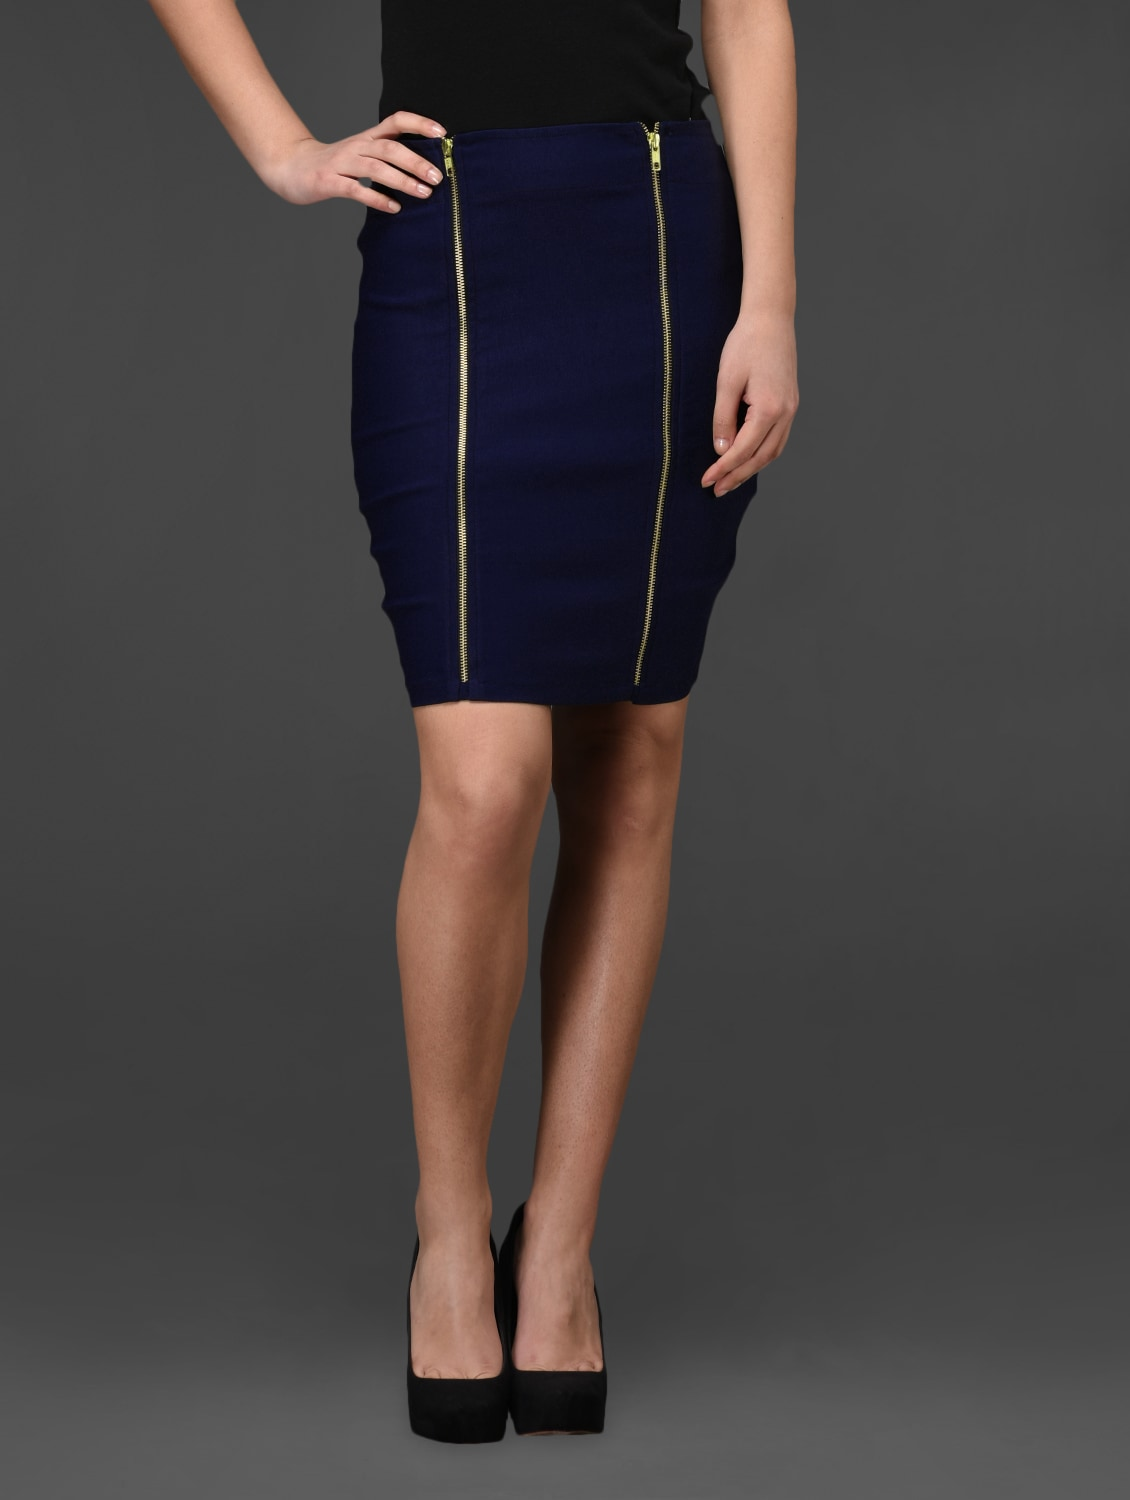 Blue Double Zip Front Bodycon Skirt - Fashionexpo